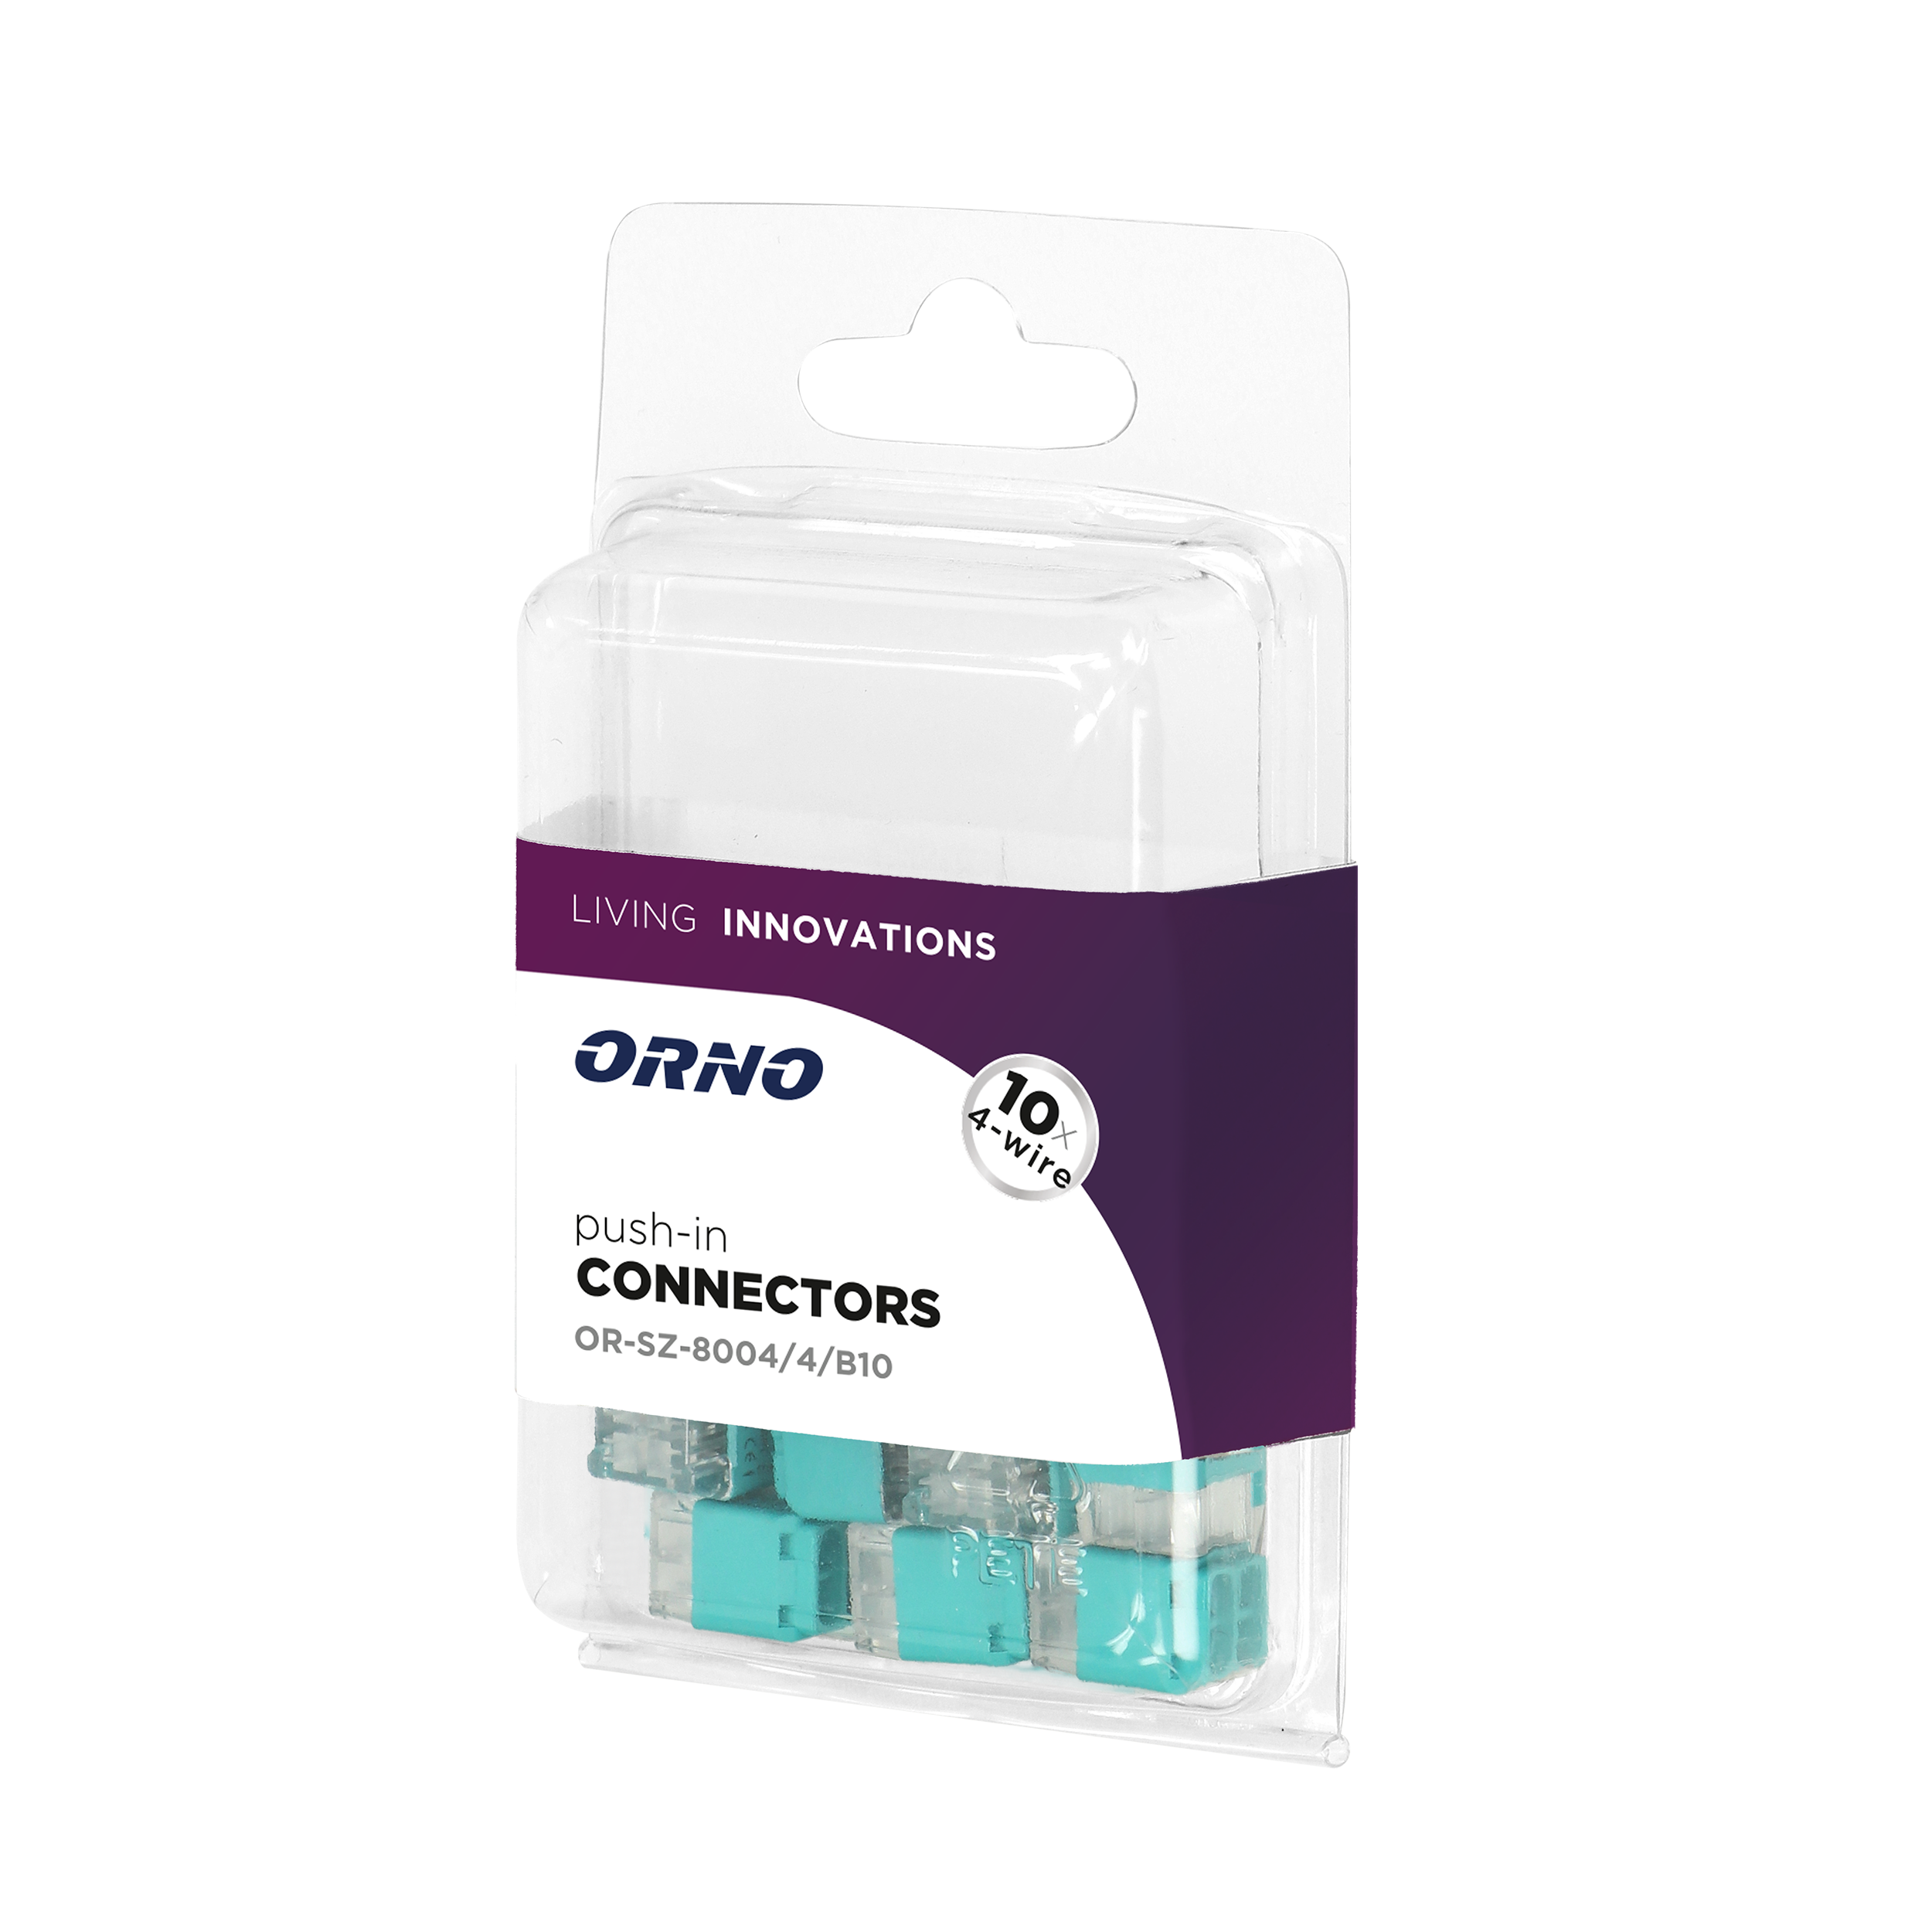 Installation push-in connector for 4 cables (rigid cable 0.75-2.5mm2), IEC 300V/24A, blister pack 10 pcs.